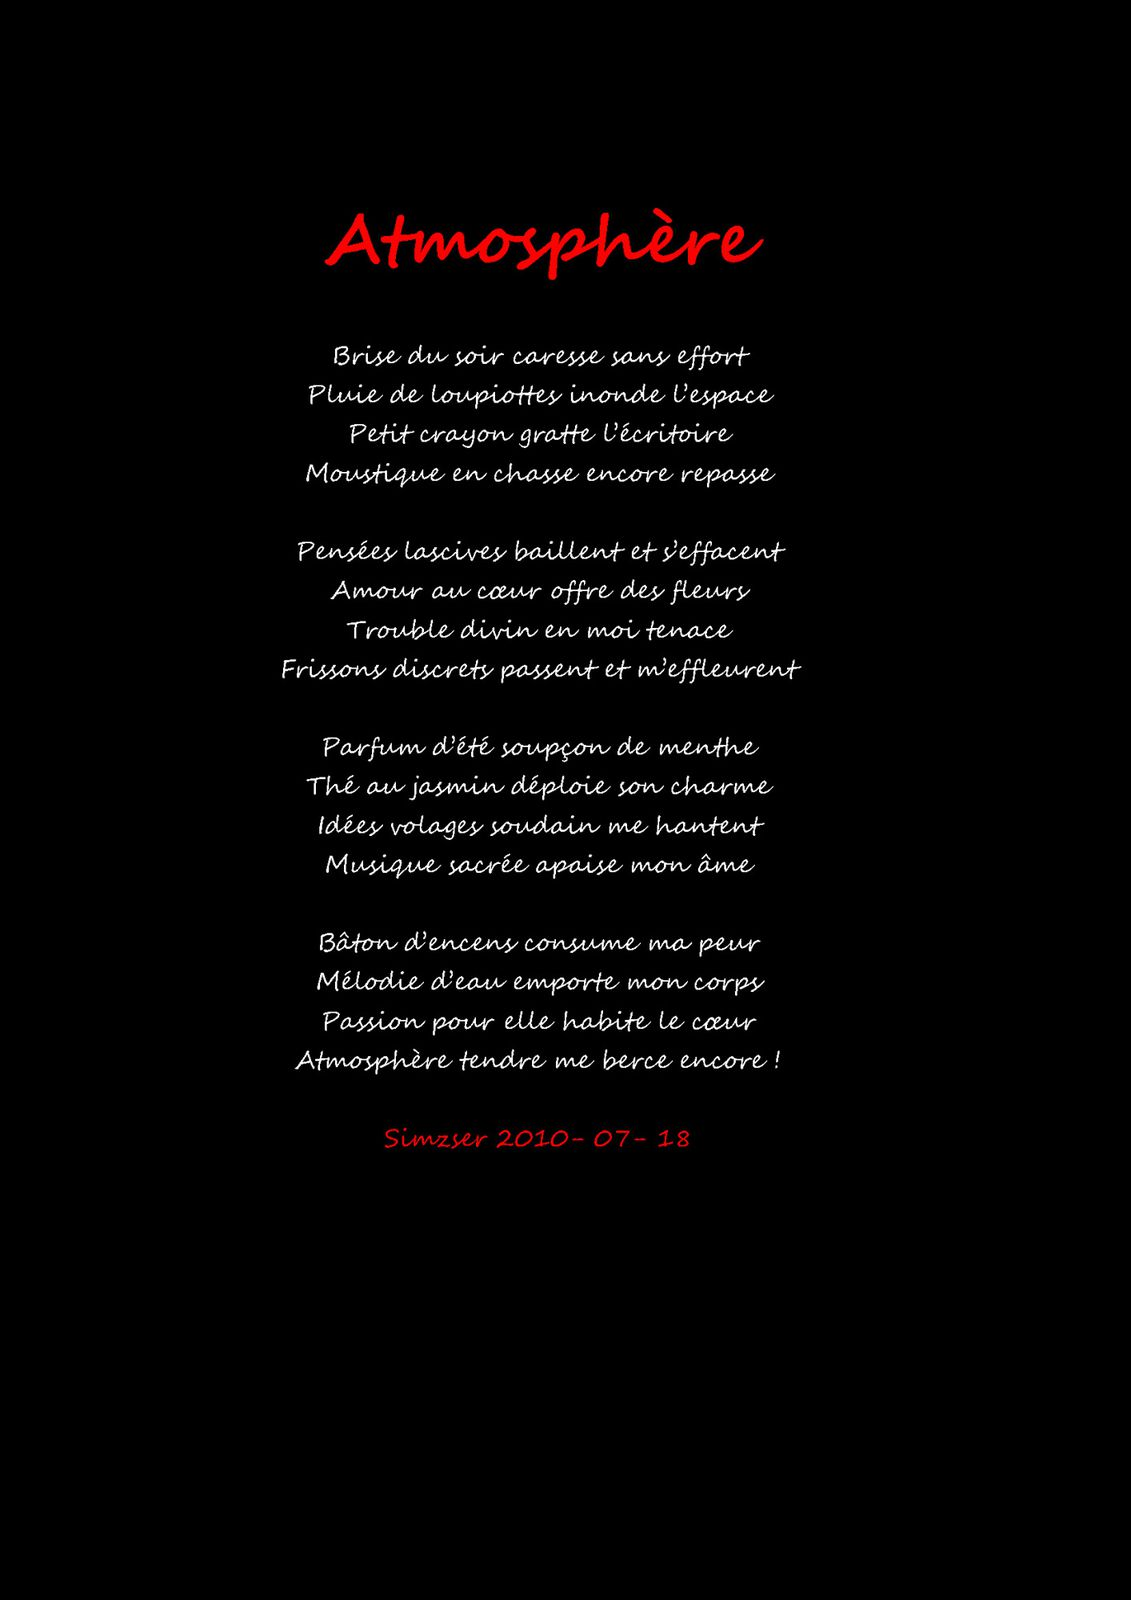 Atmosphere-copie-2.jpg